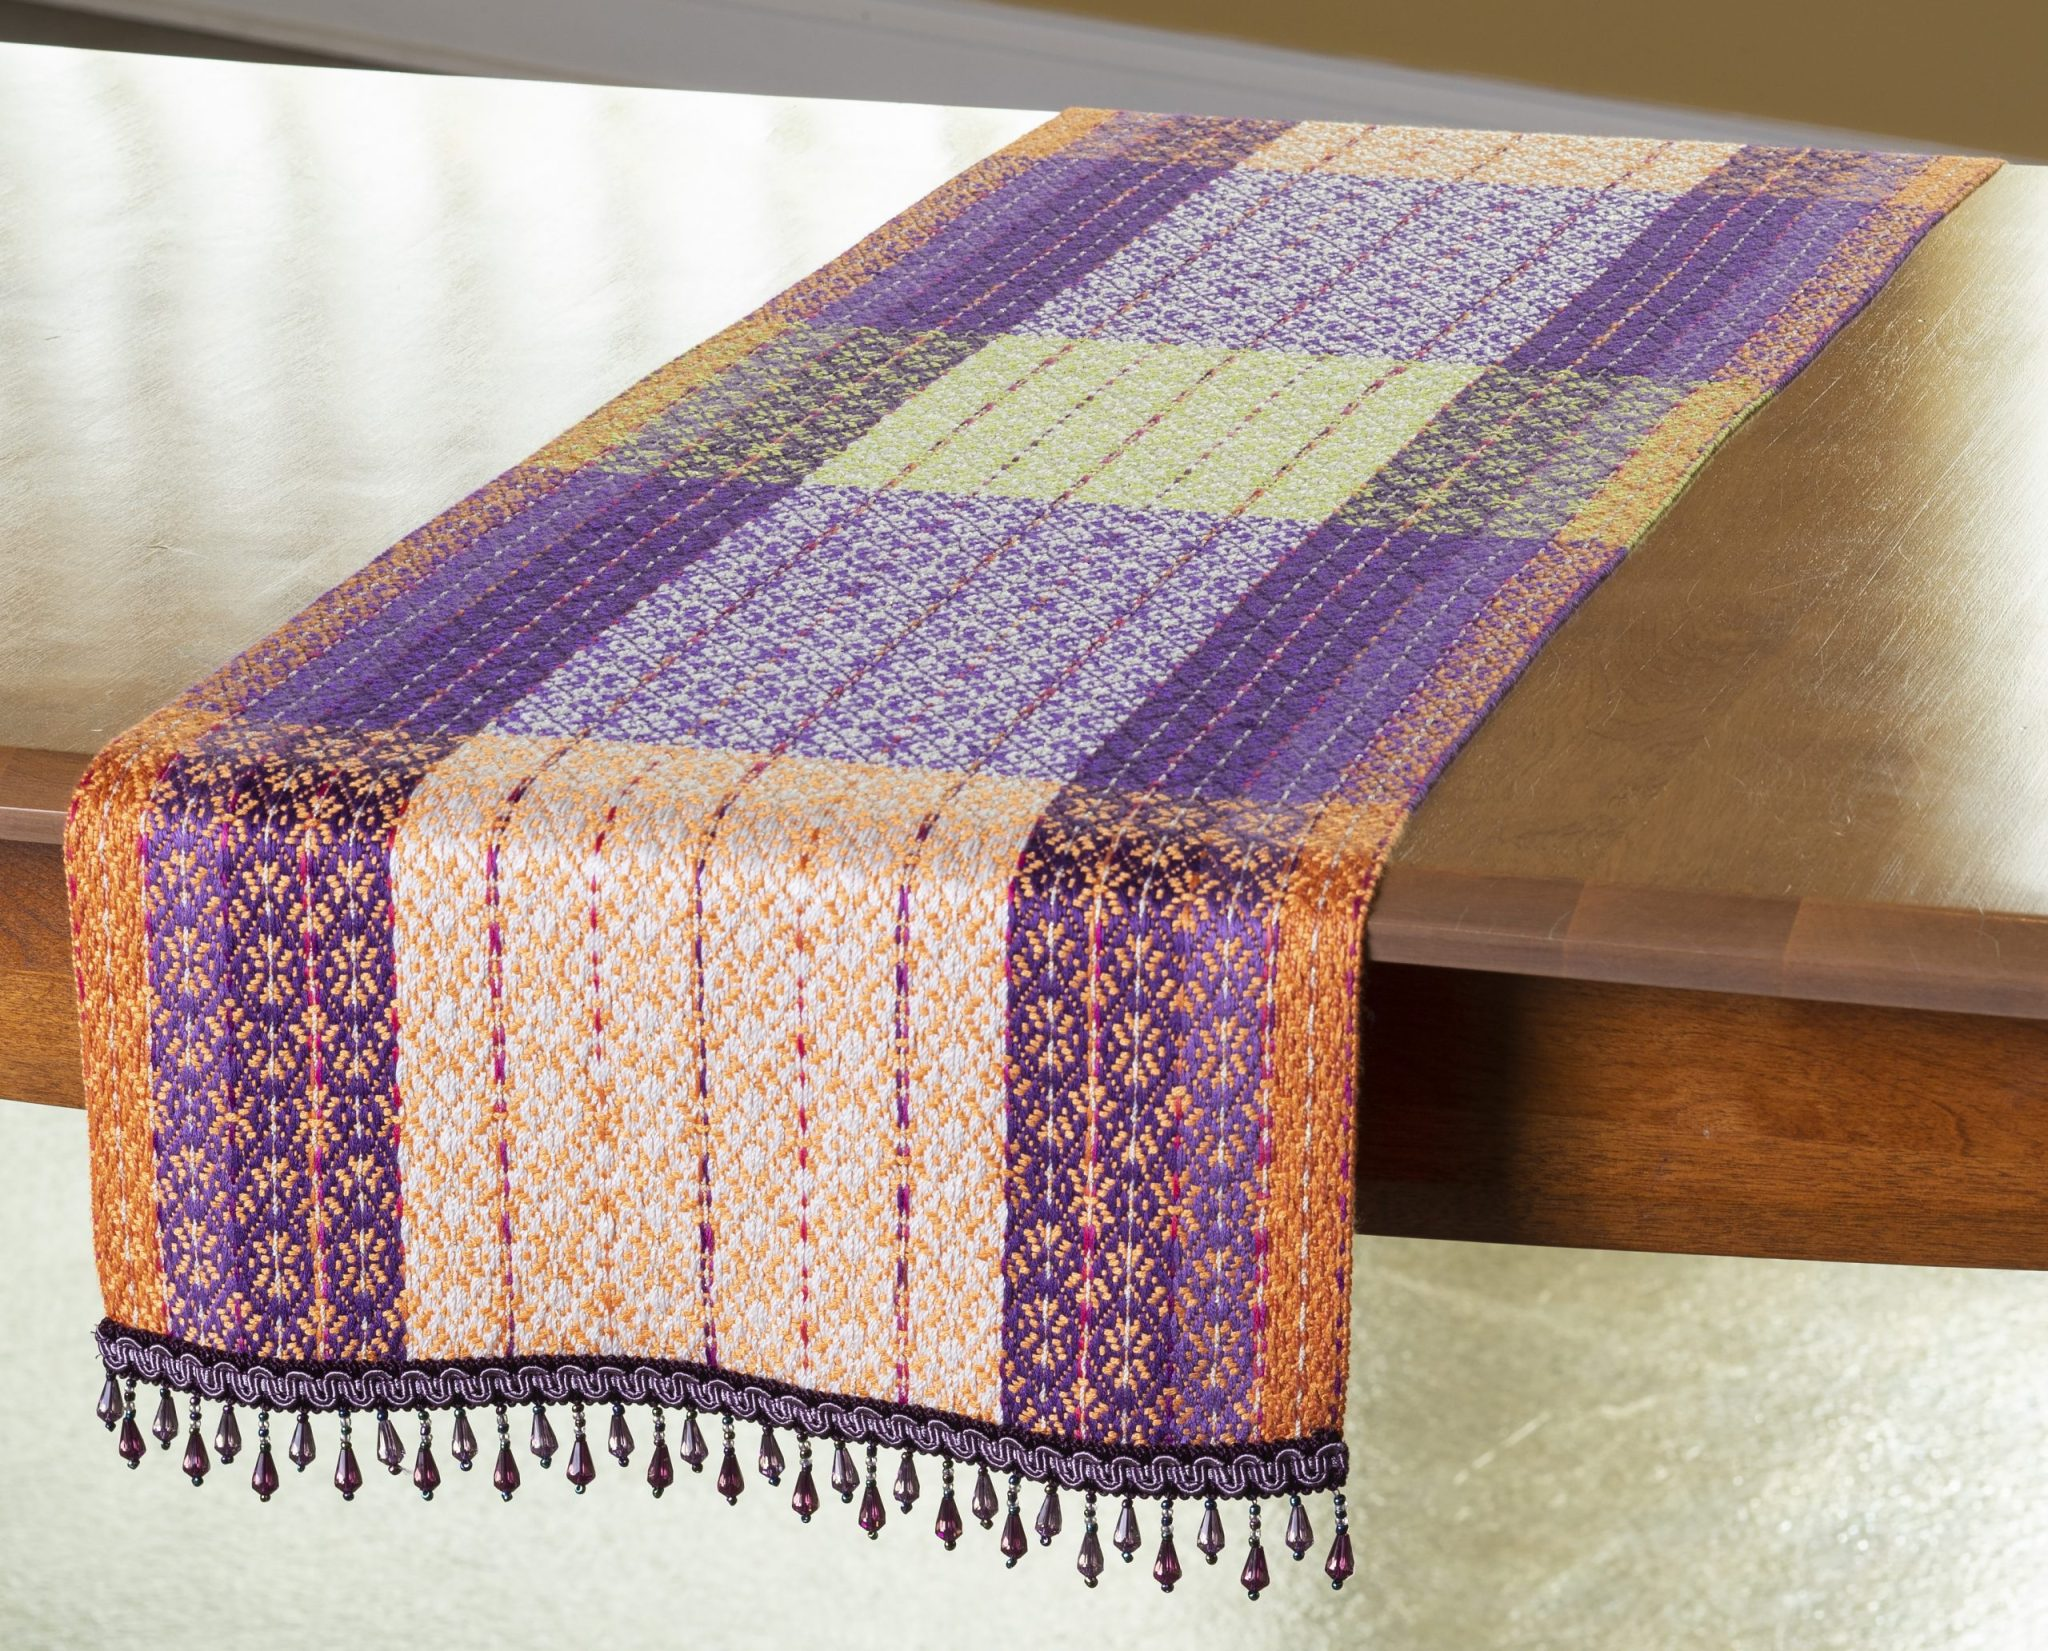 Bamboo Pub table runner